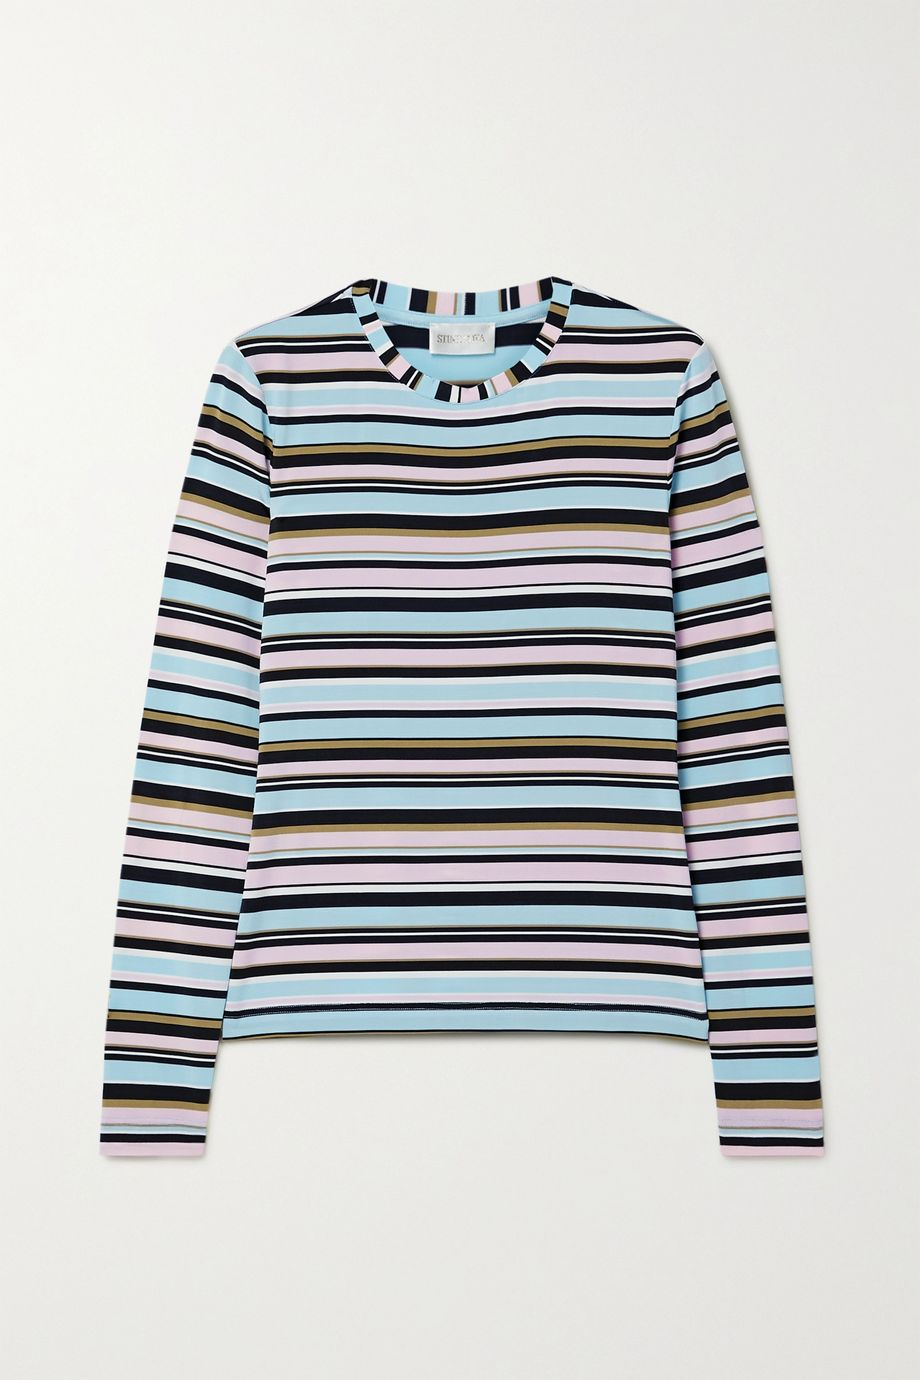 Stine Goya Maya striped stretch-jersey top